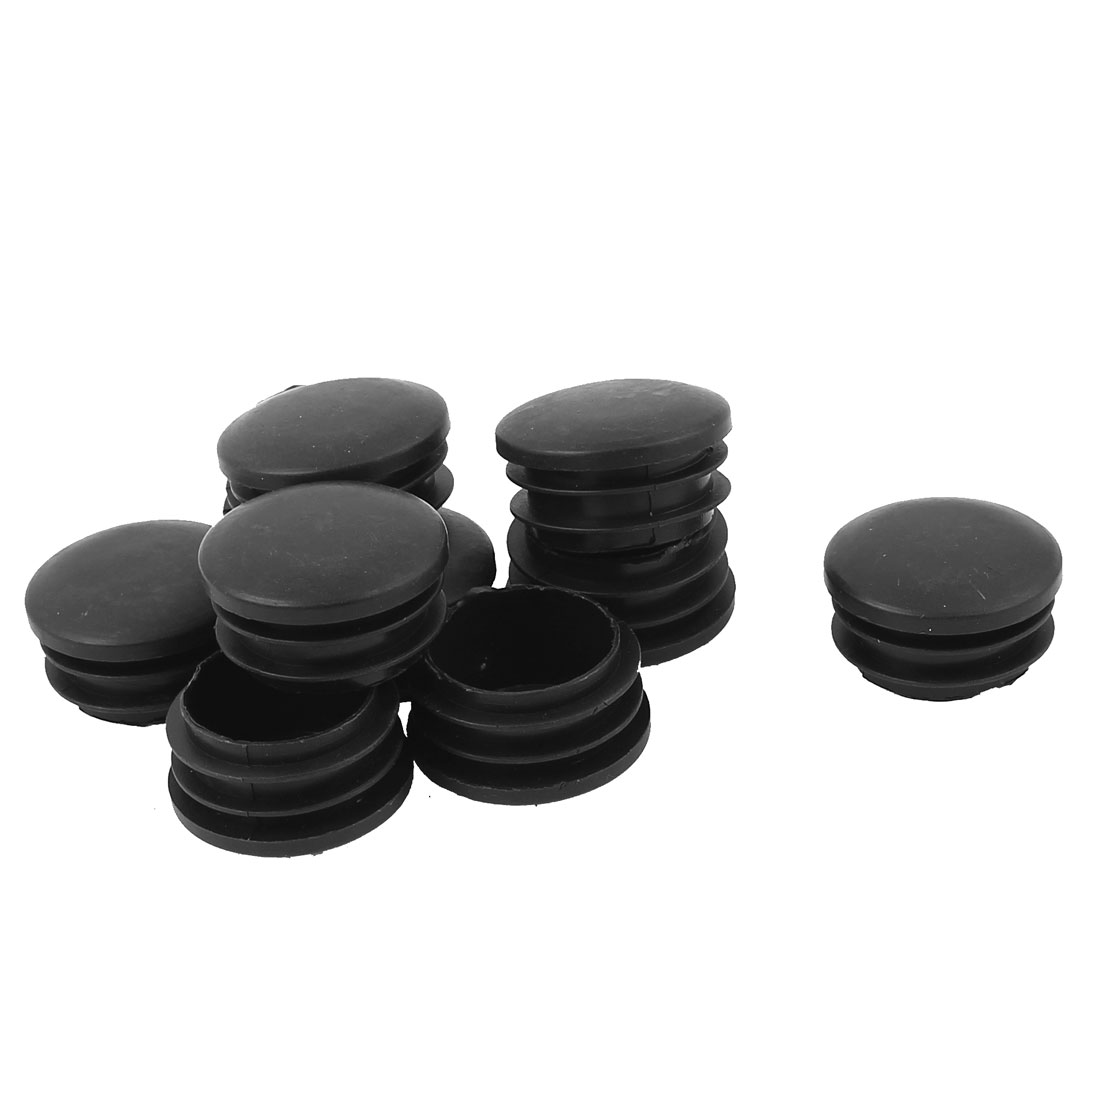 10Pcs Black Plastic Round Blanking End Tube Caps Cover Inserts 33mmx20mm